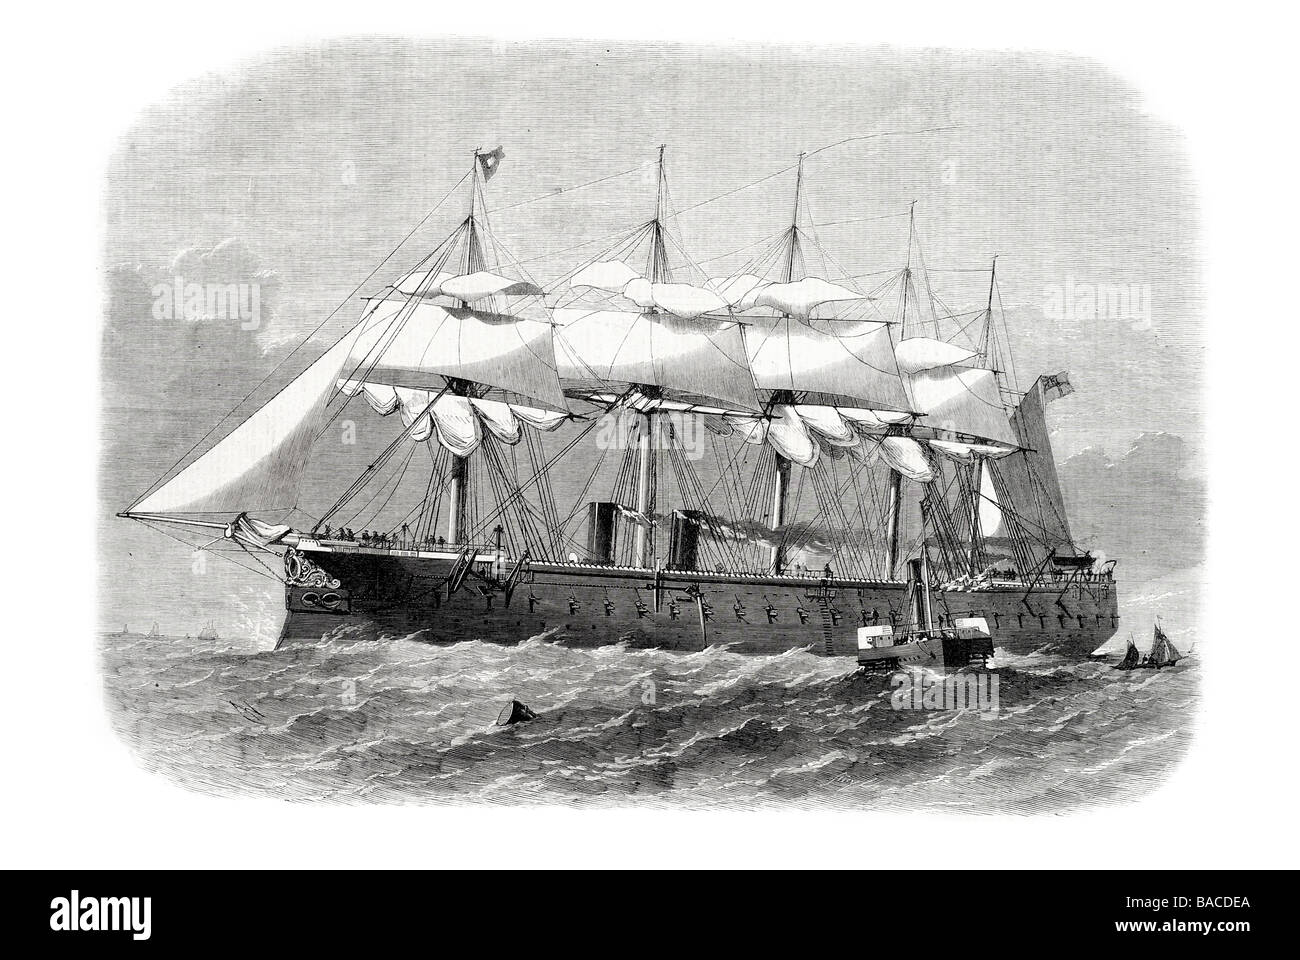 our iron clad fleet h m s minotaur built on the thames armored battleship steamer battery 1865 - Stock Image